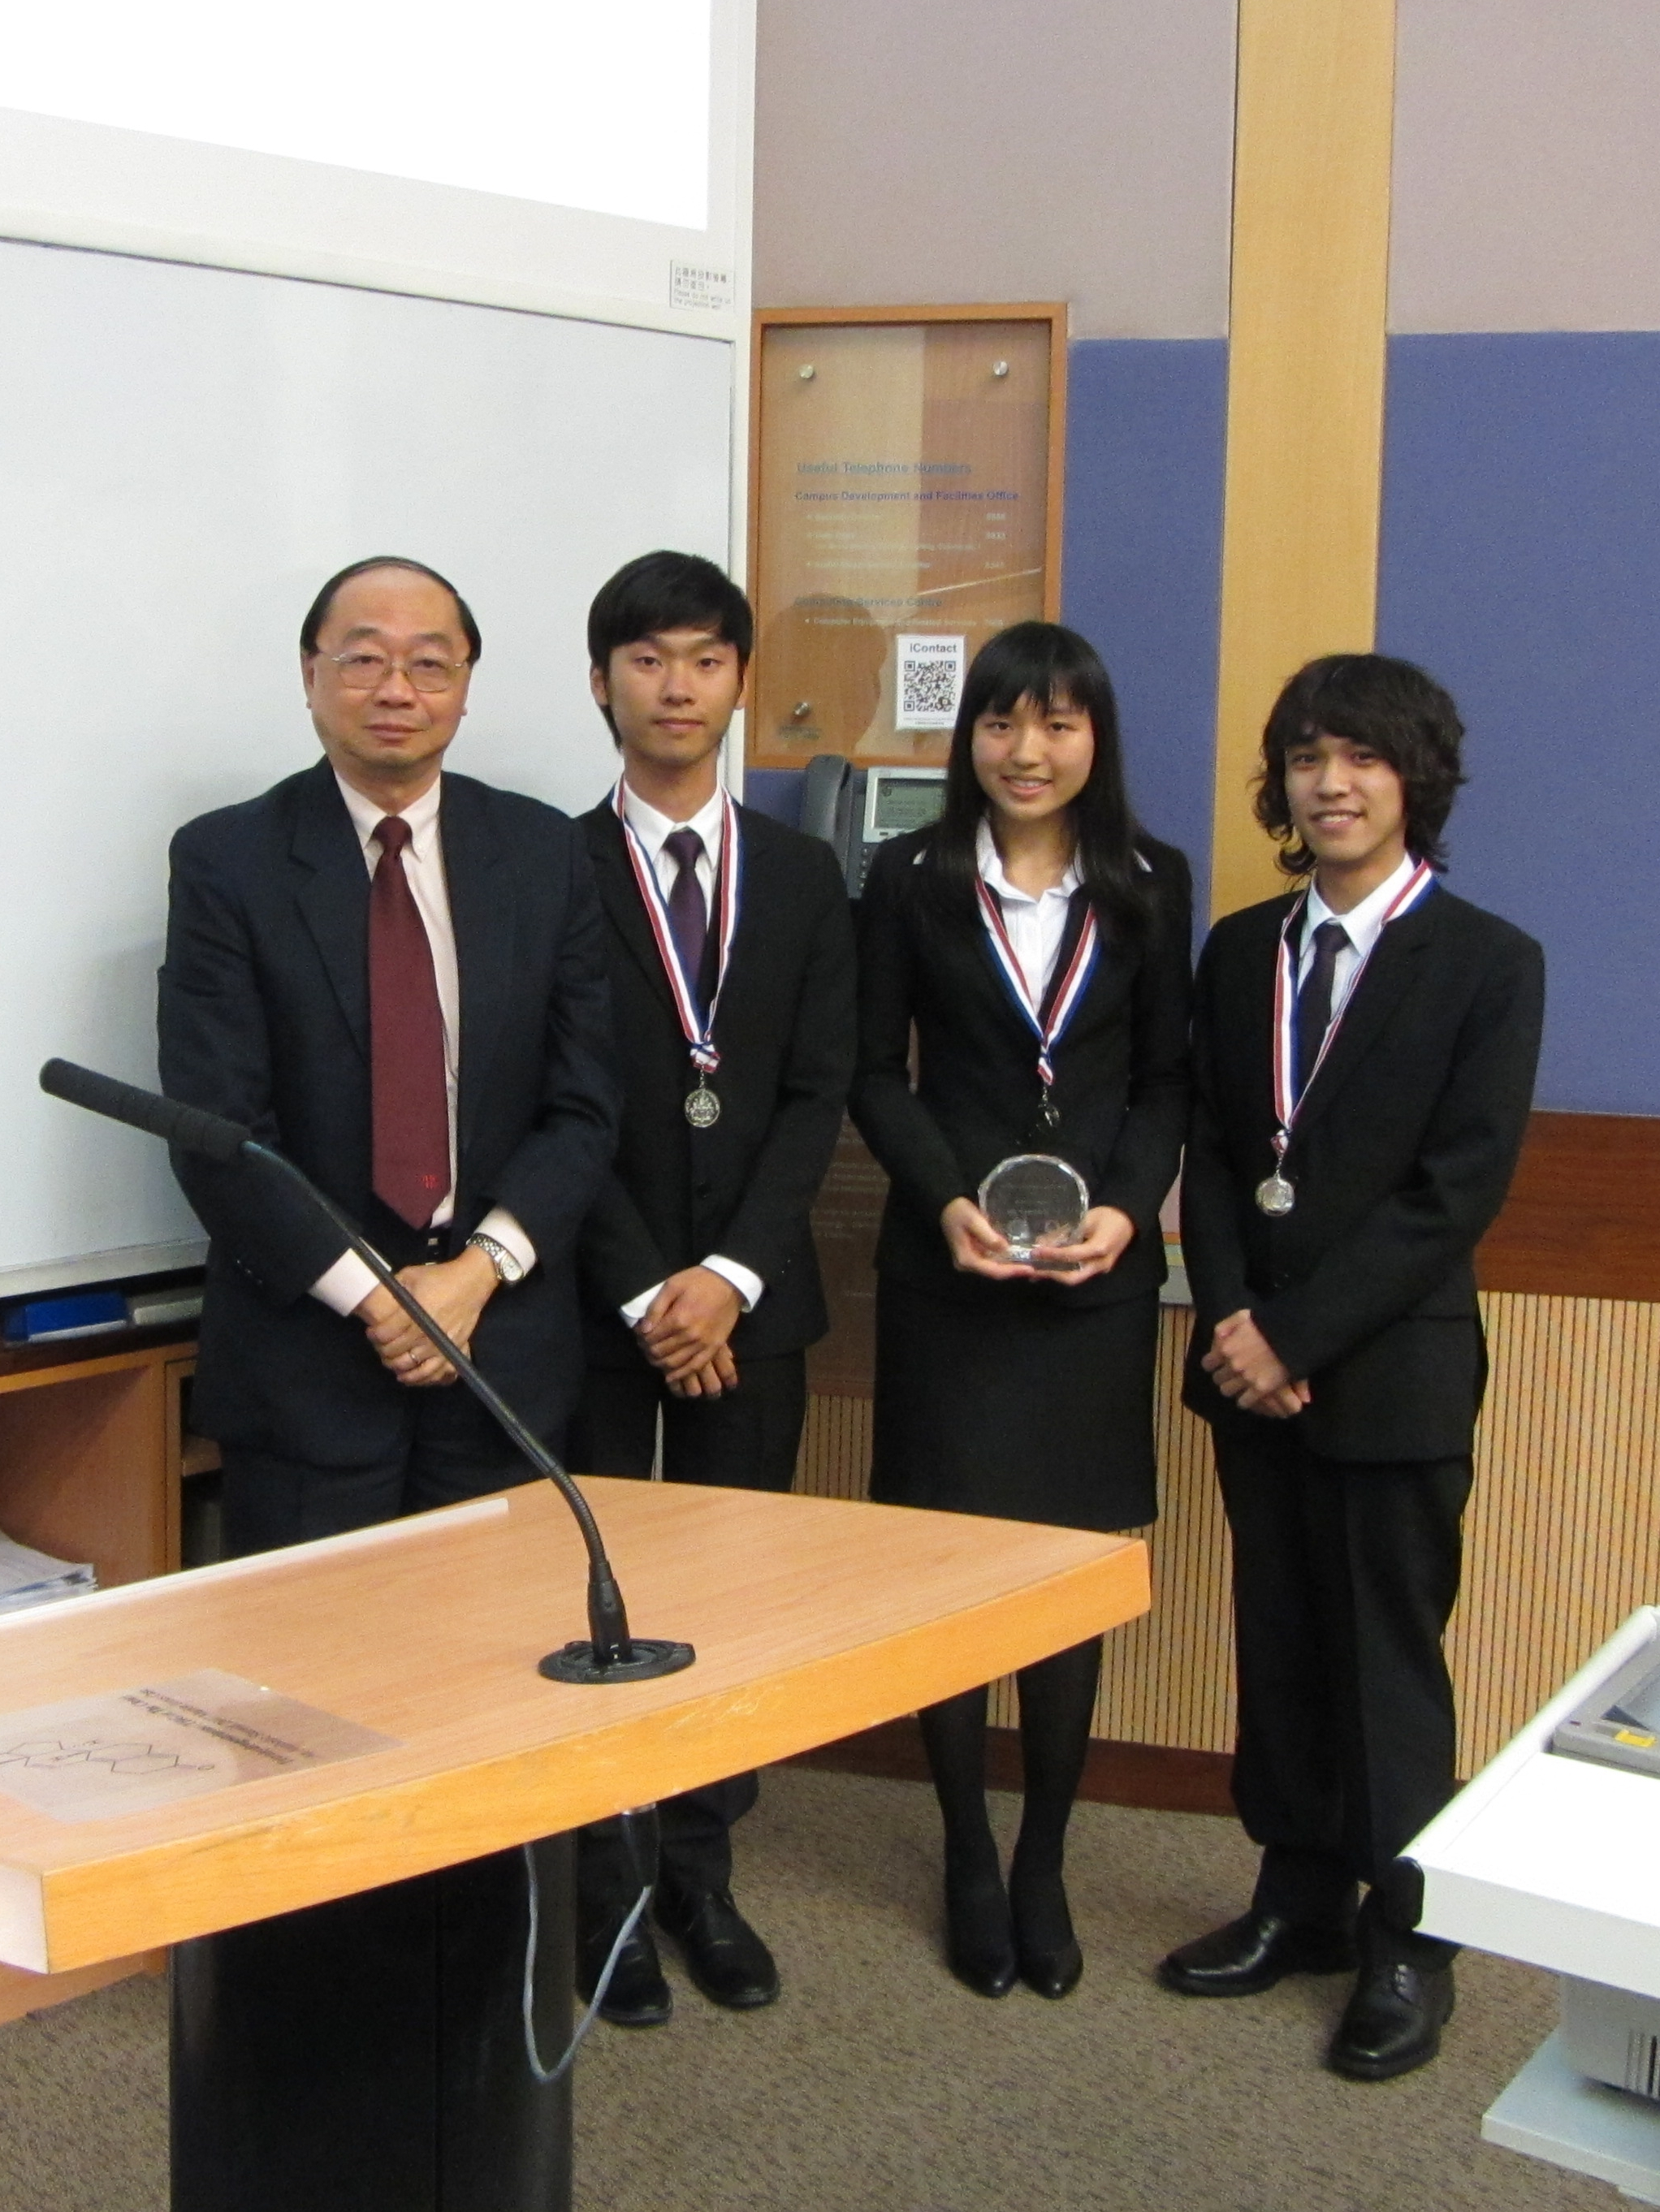 CUHK Team presenters received the prize from Prof. Wong (Guest of Honor).